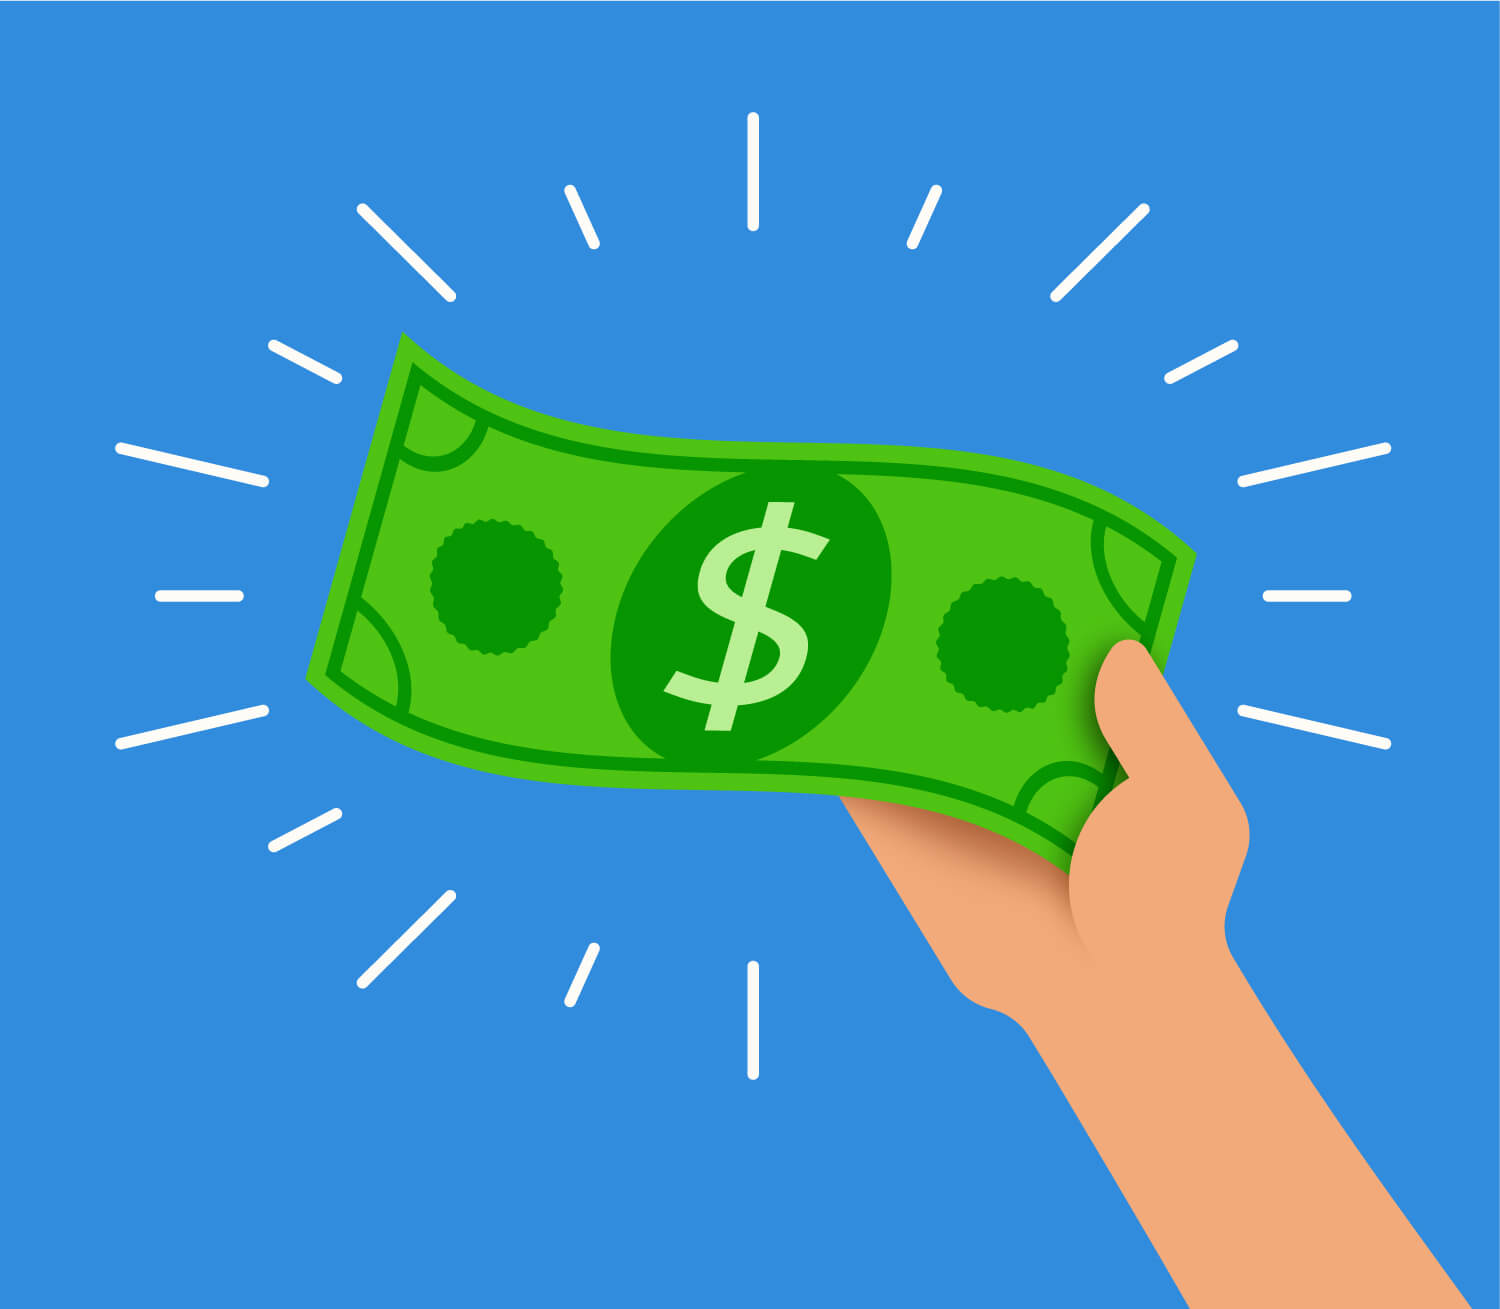 Hand holding money from personal loan